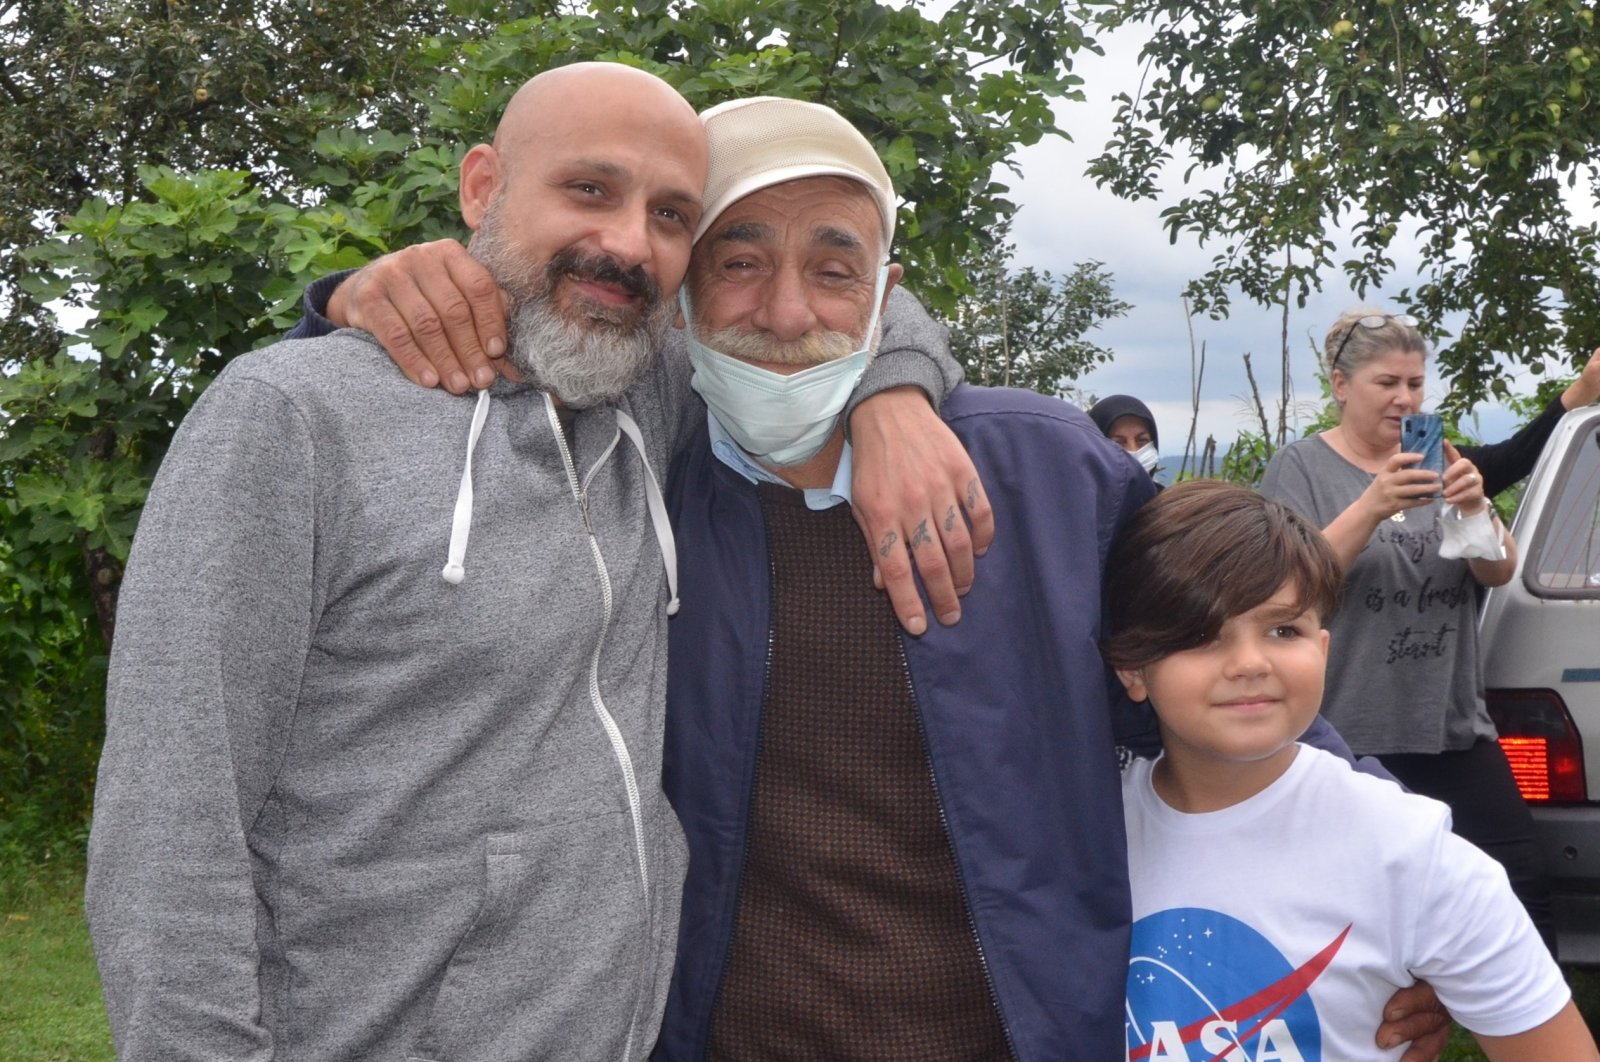 Osman Zerey (C) poses with his son Salvatore (L) and his grandson (R), in Ordu, northern Turkey, Aug. 10, 2021. (IHA PHOTO)